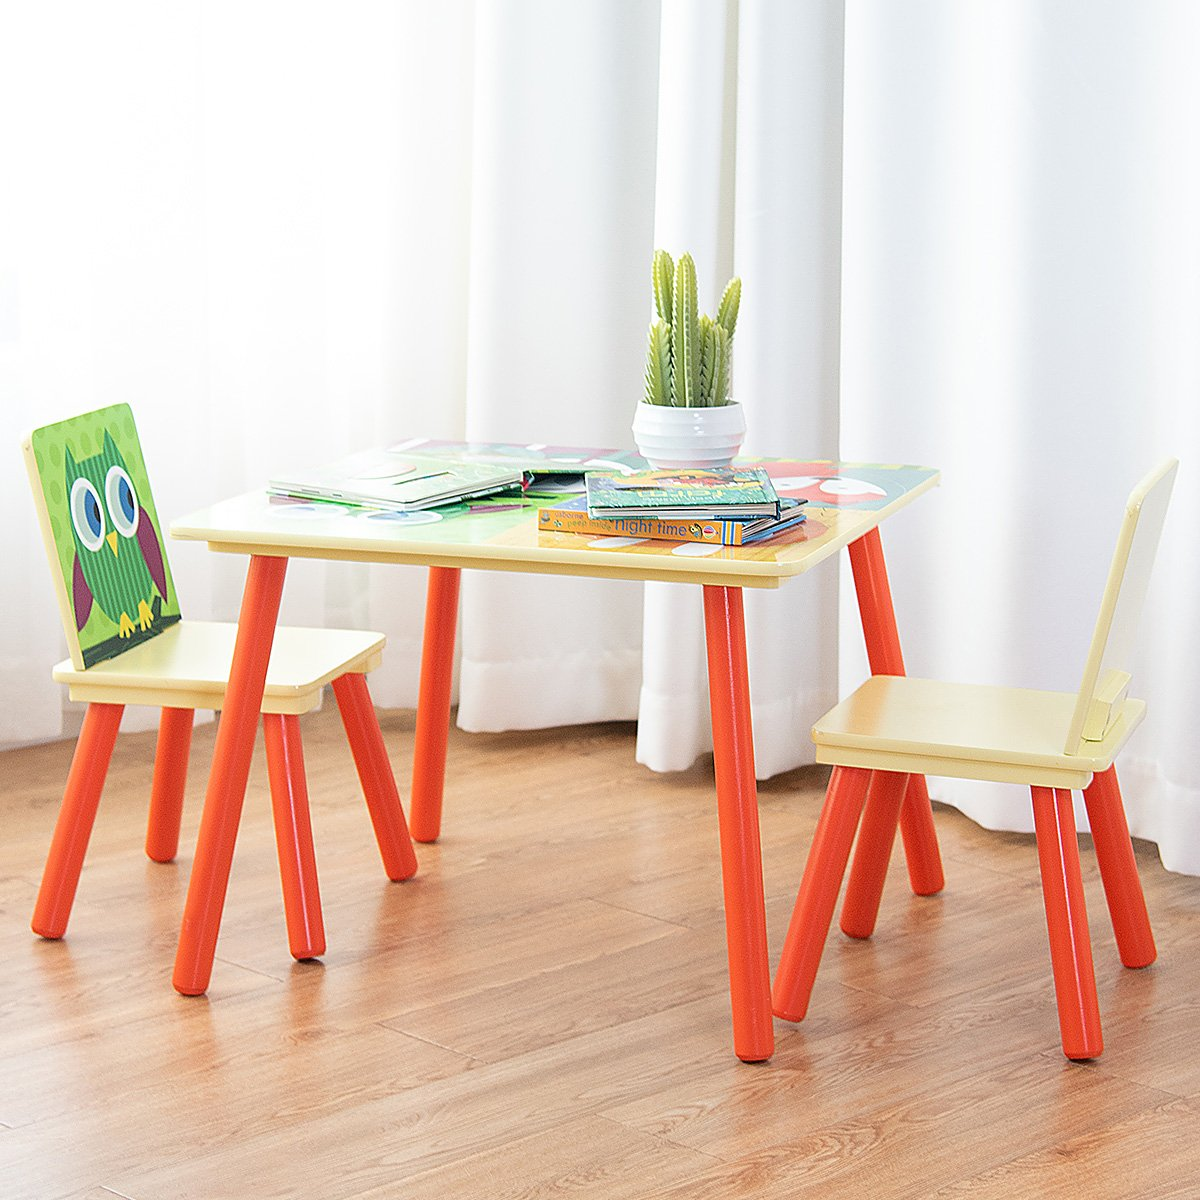 Costzon Kids Table and 2 Chair Set, Wooden Table Furniture for Children Toddler